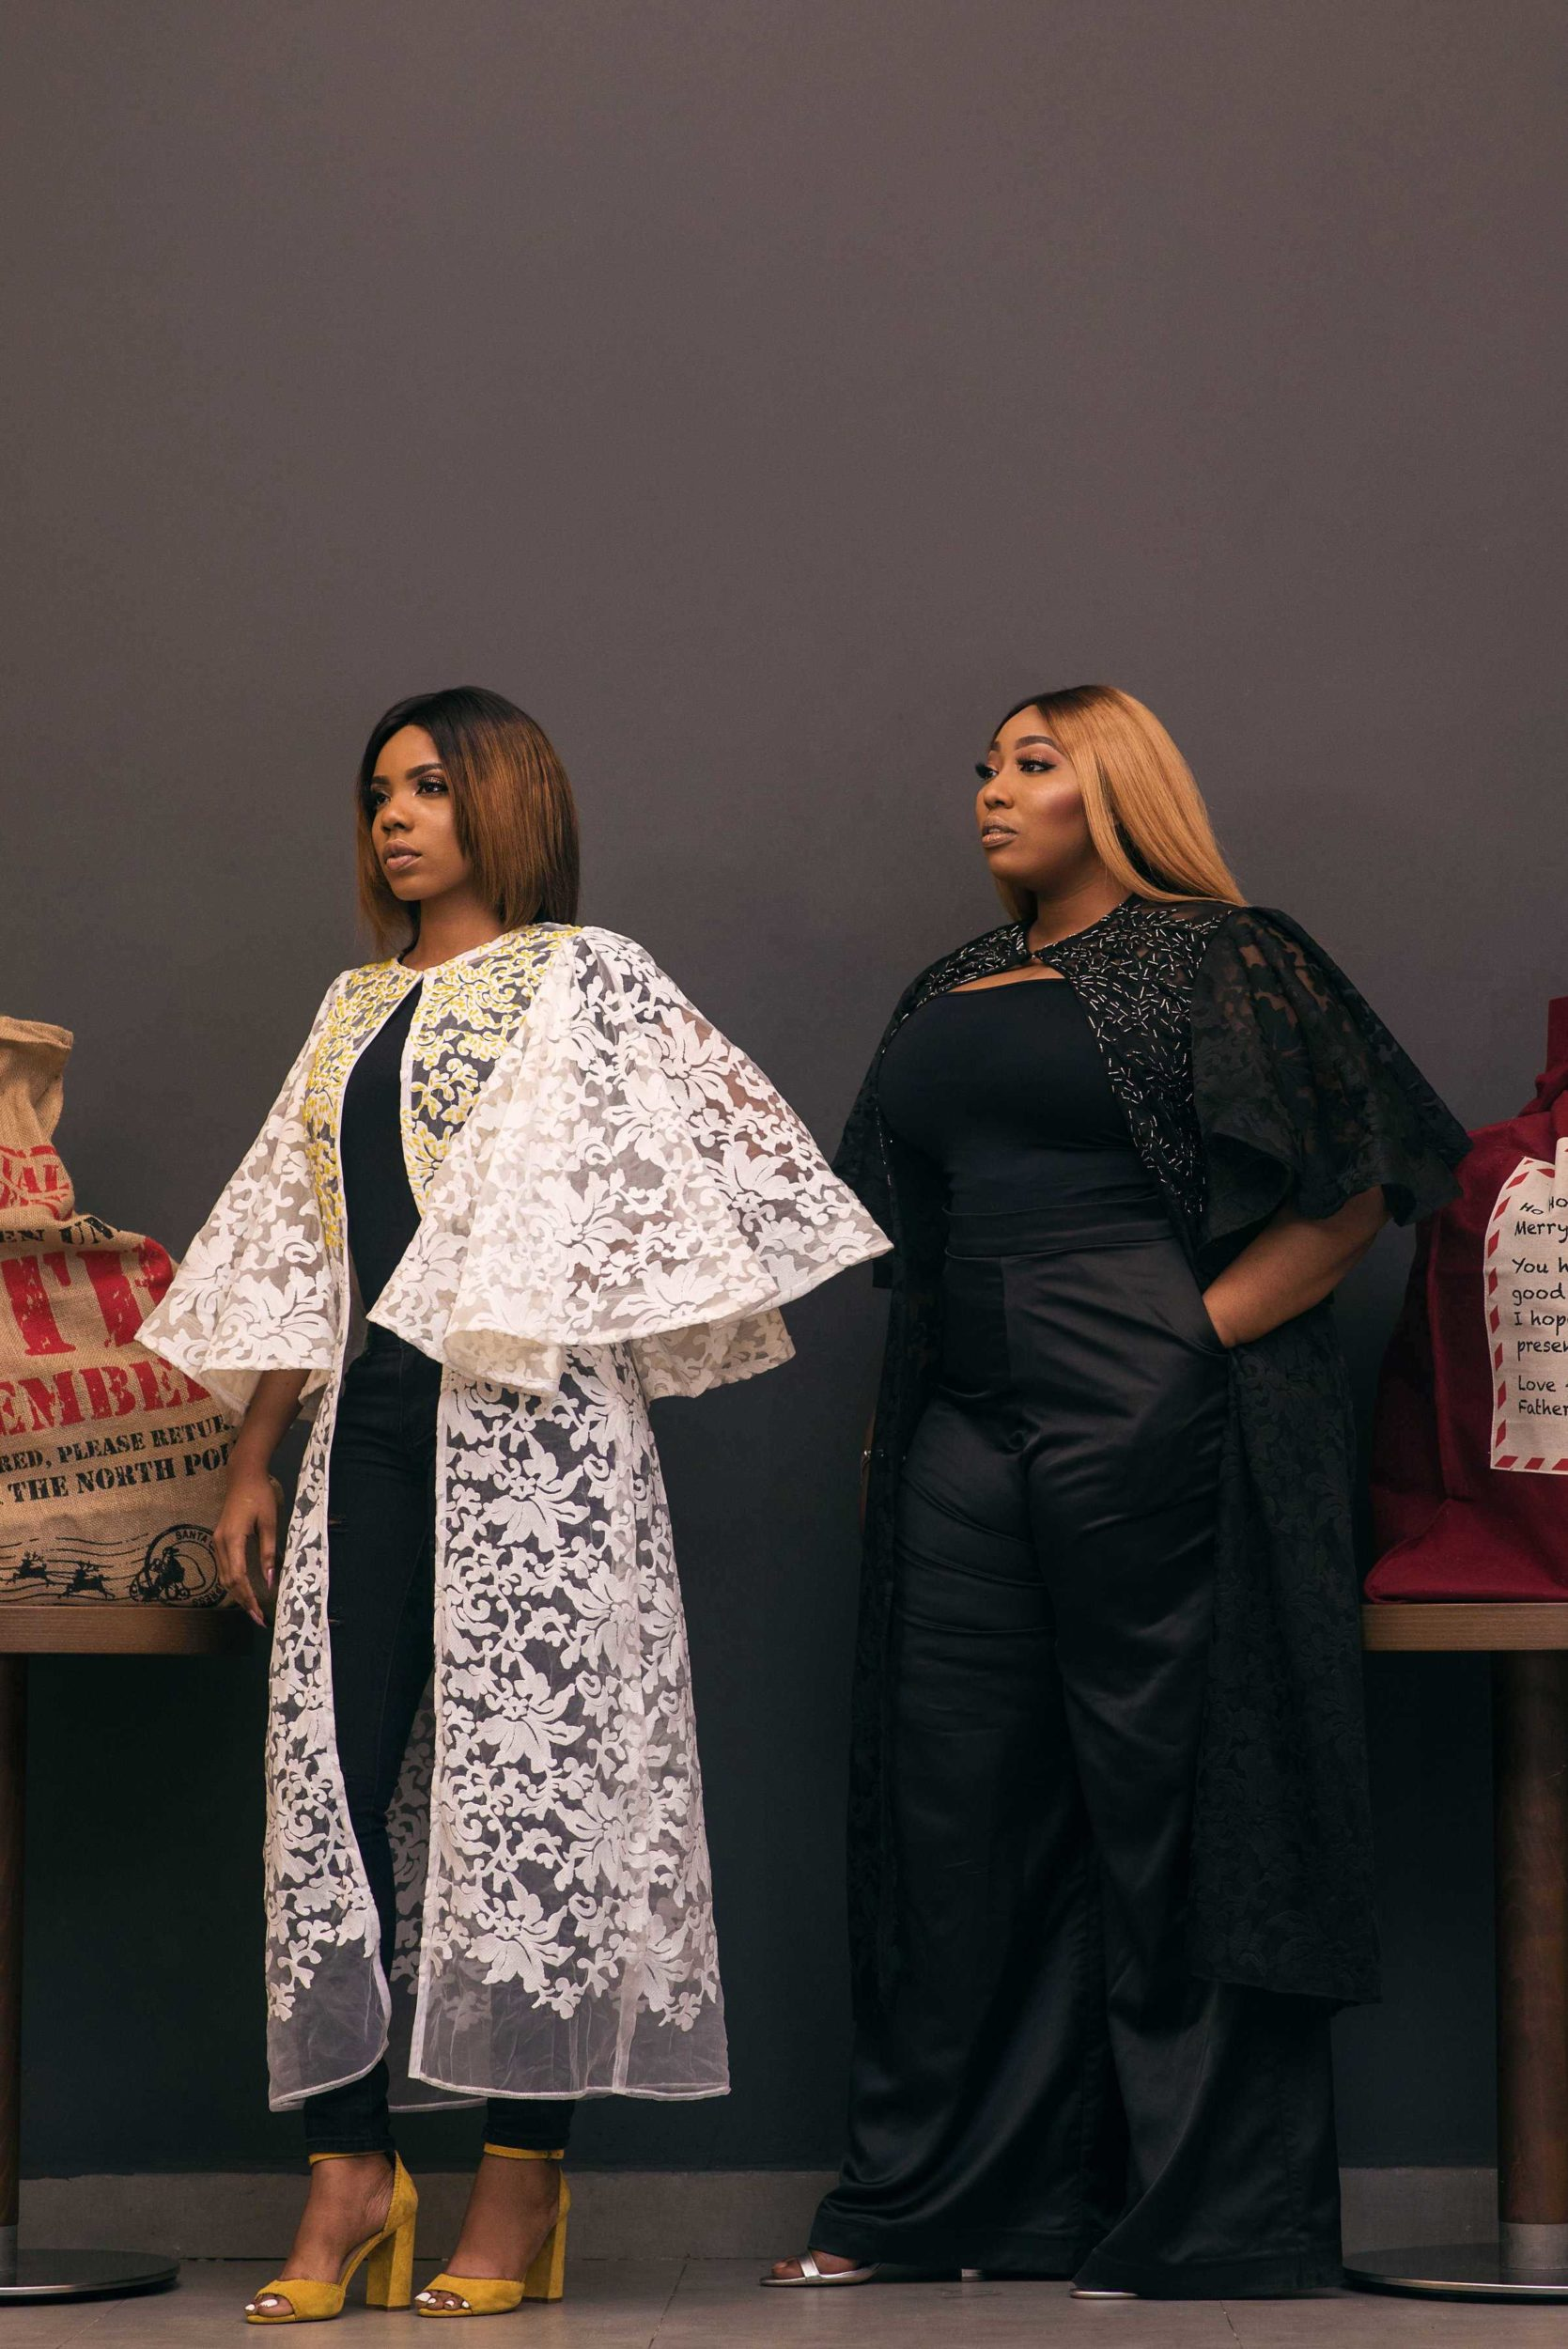 My Q Lady's Latest Collection Celebrates Women of All Sizes